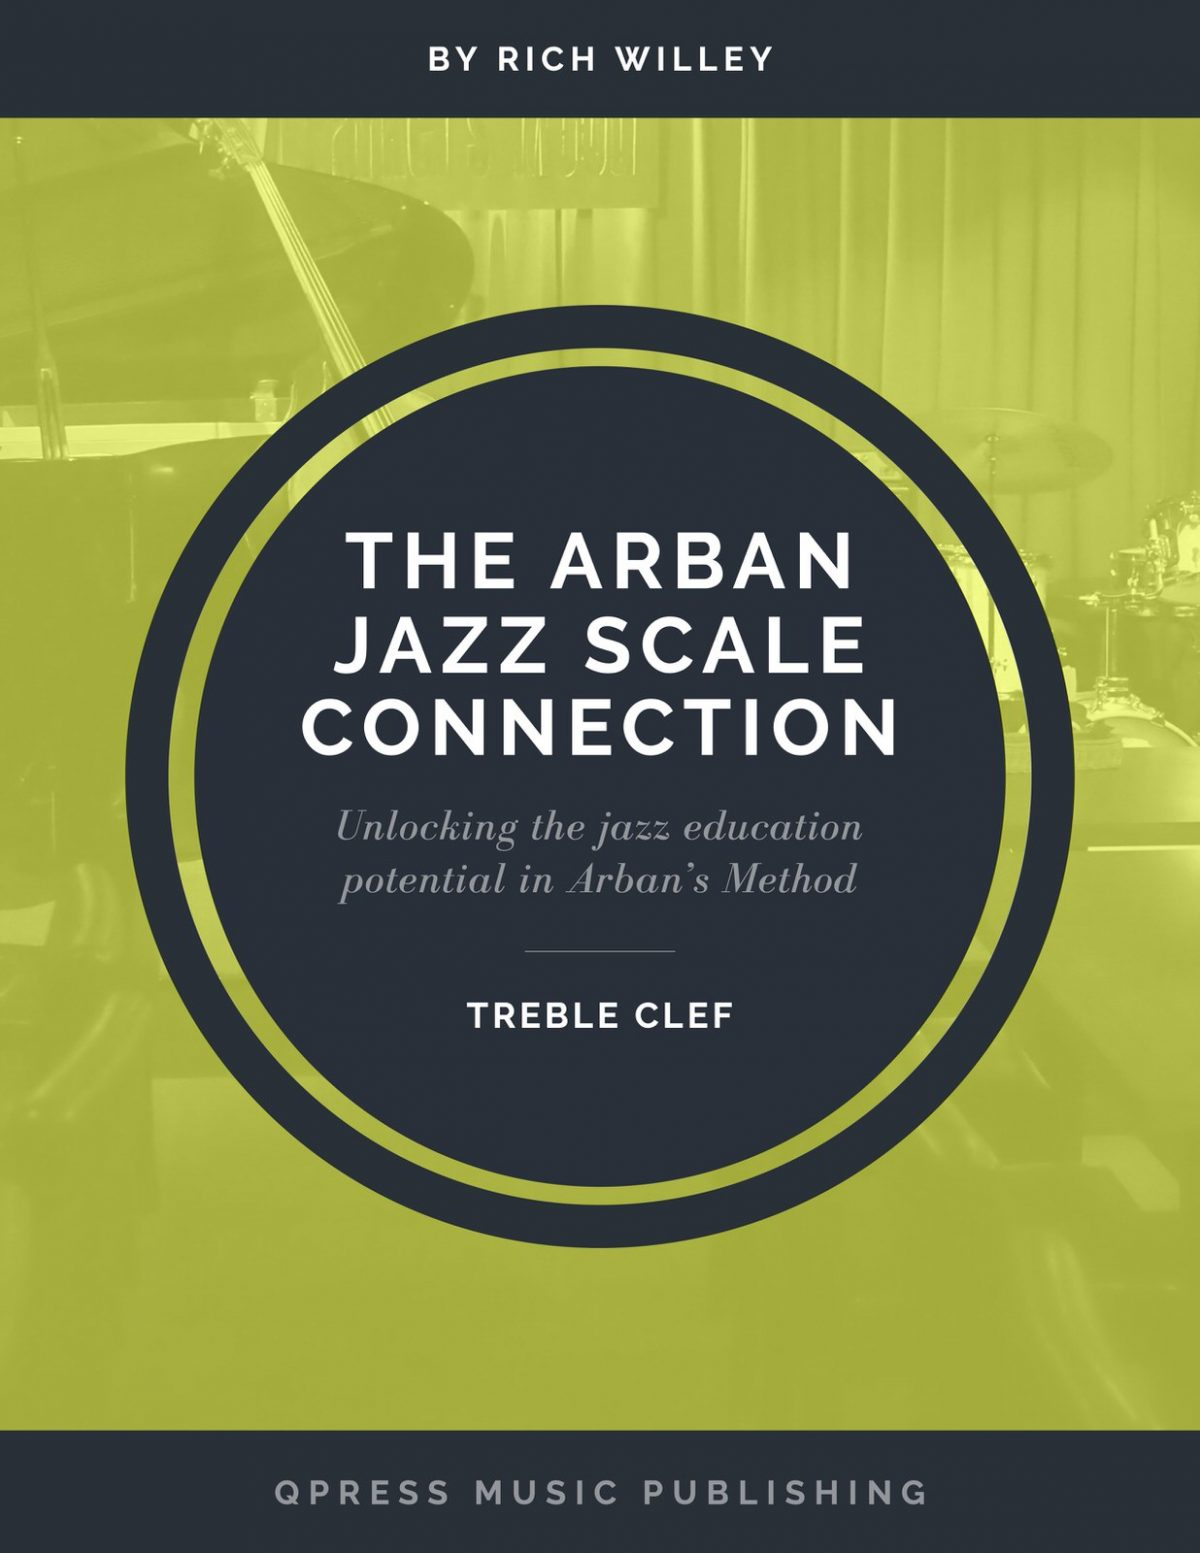 Willey, Arbans Jazz Scale Connection (Treble Clef)-p01